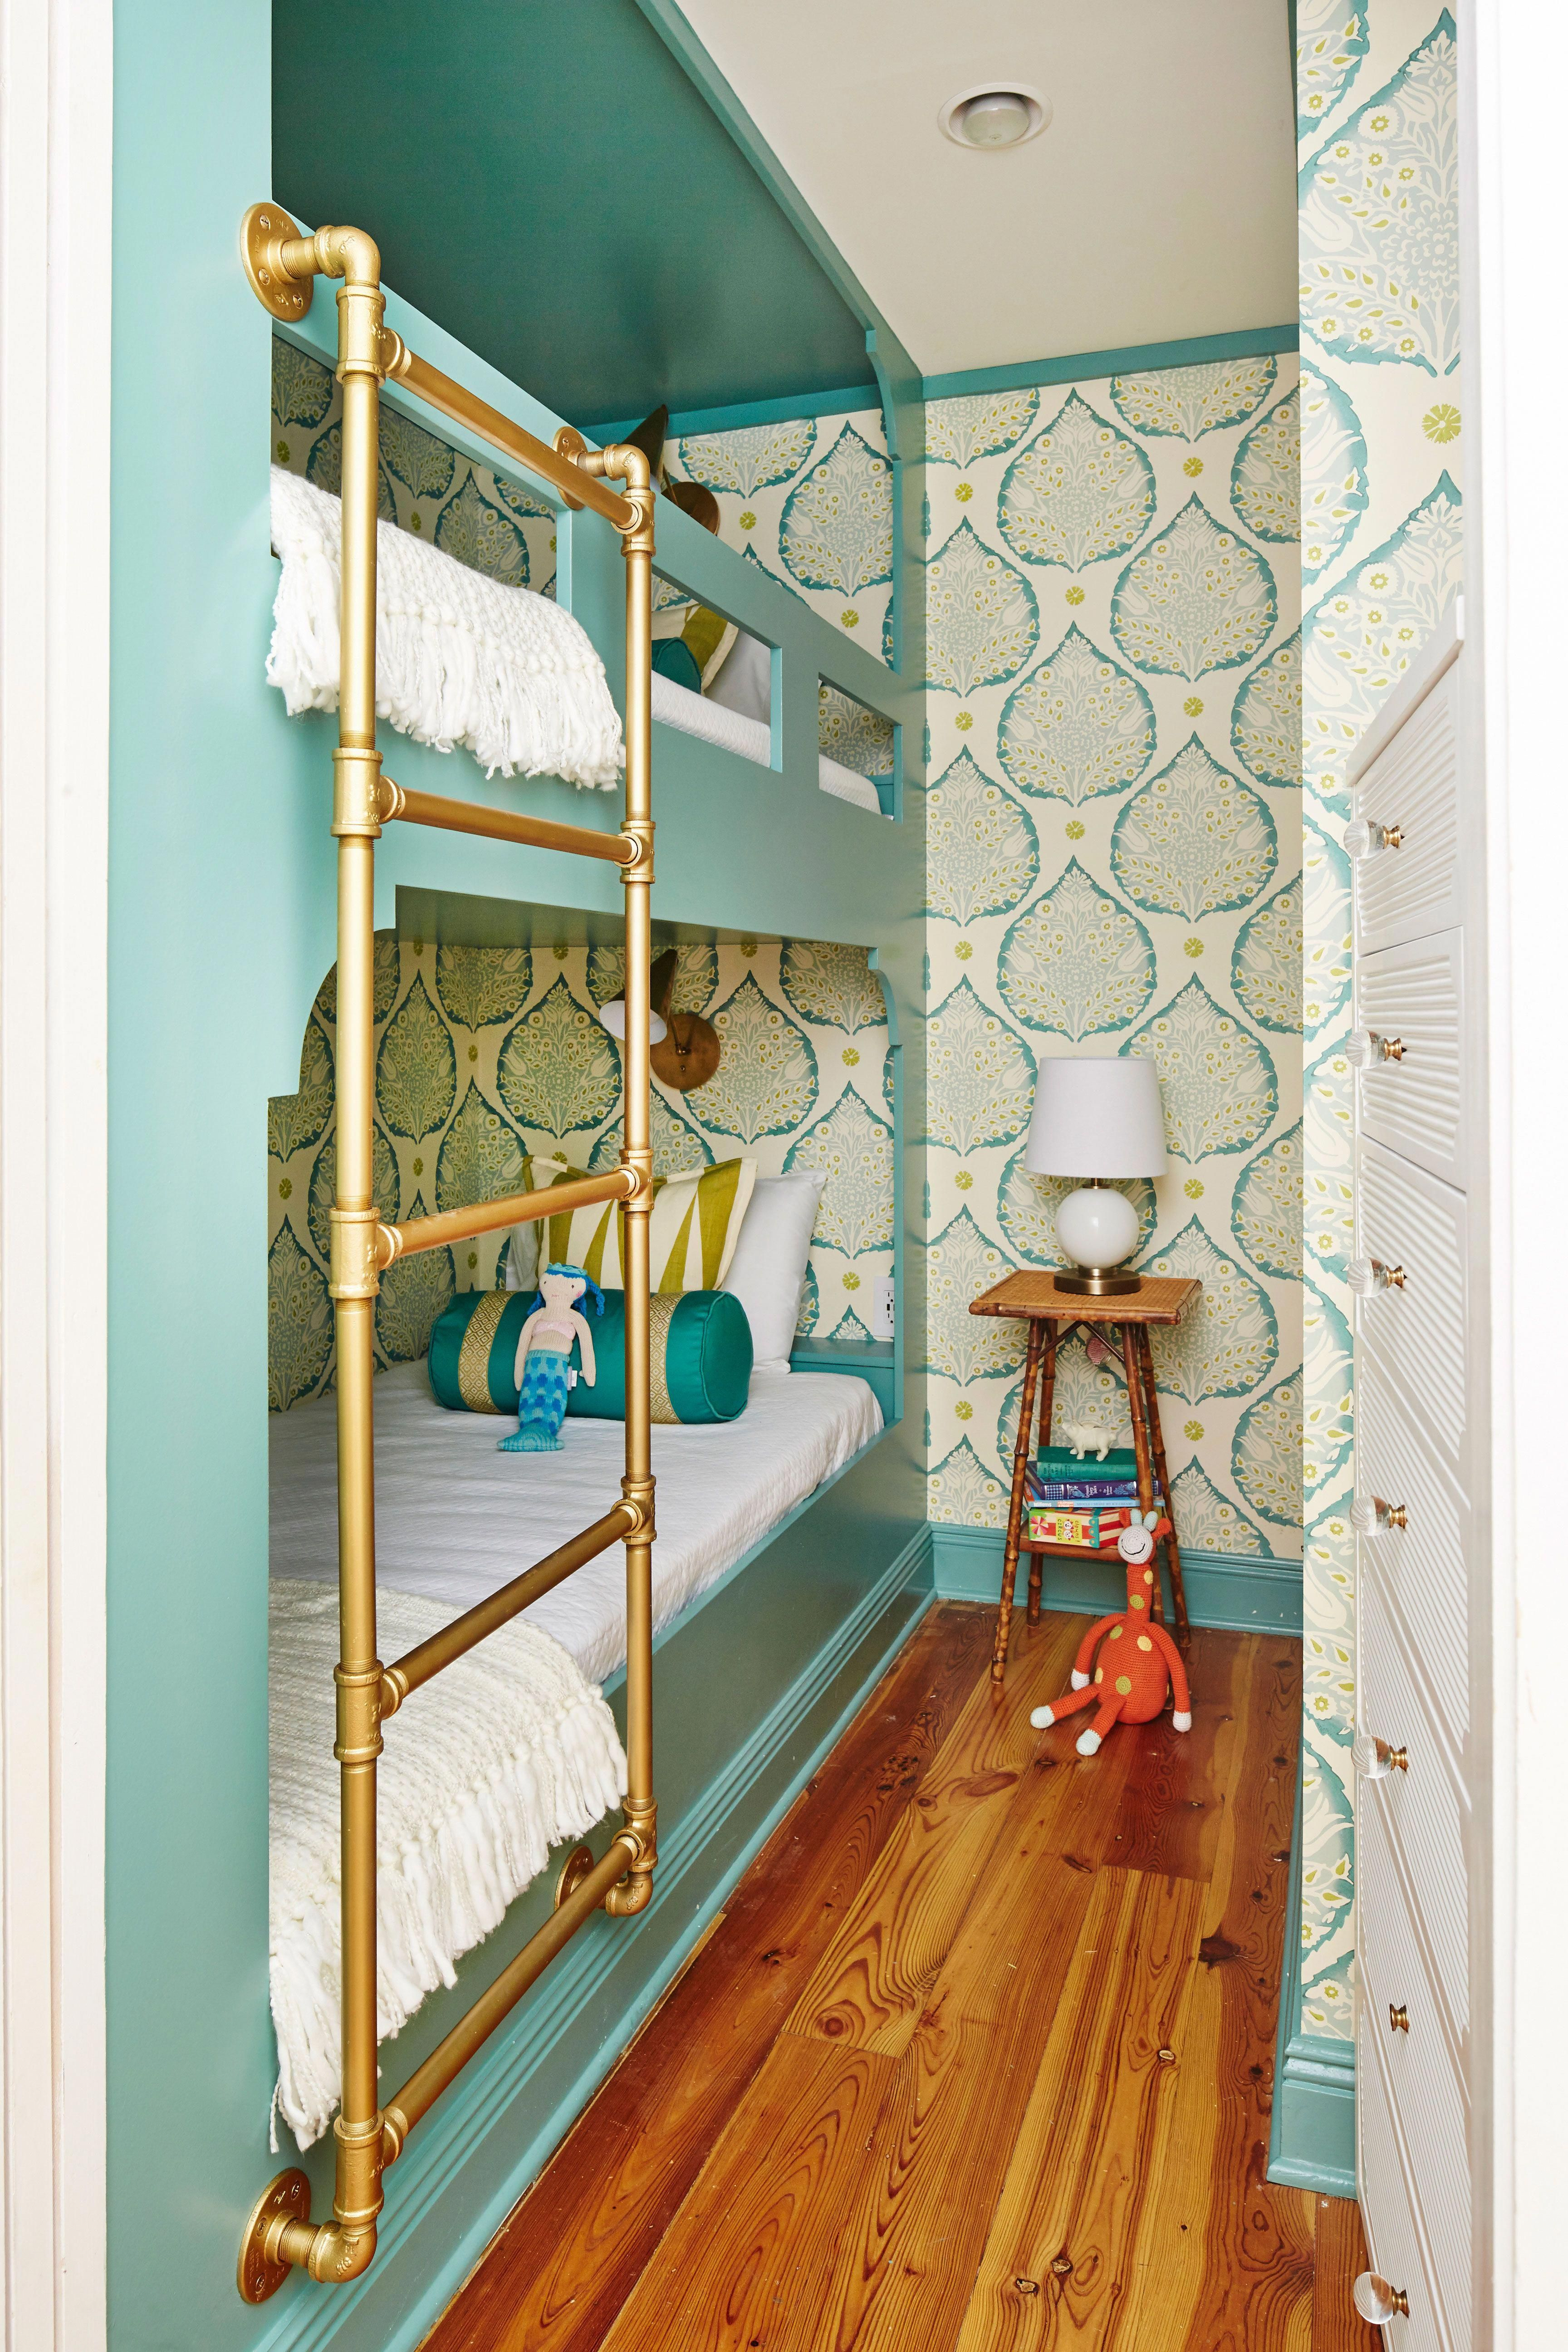 Corner loft bed ideas  In this Rosemary Beach condo dynamite design transformed a Rosemary